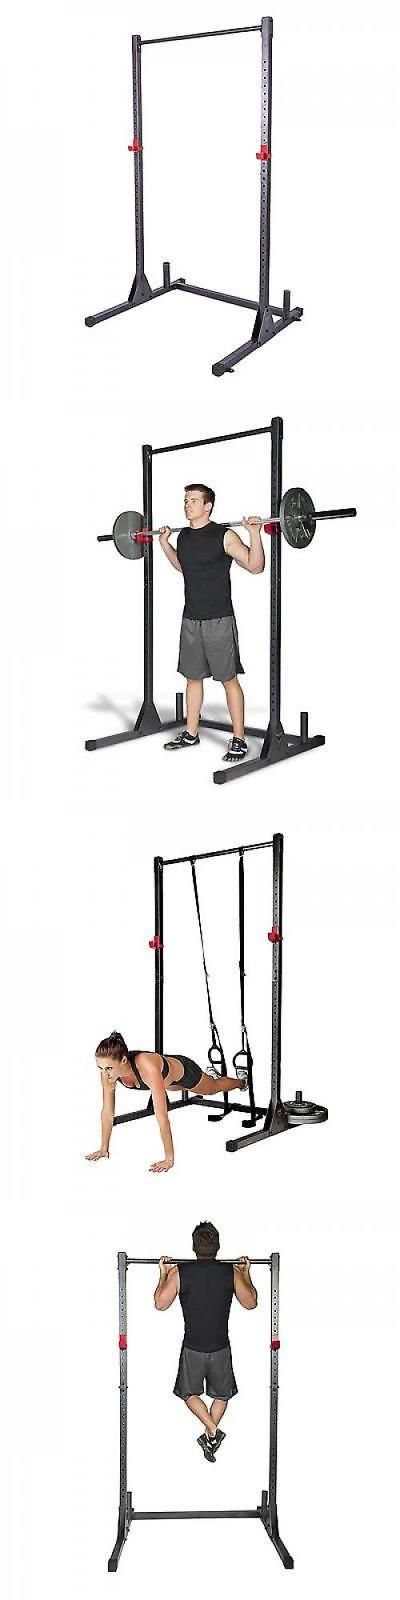 Pull Up Bars 179816: Free Standing Pull Up Bar Gym Power Rack Fitness Exercise Stand Workout Station -> BUY IT NOW ONLY: $124 on eBay!